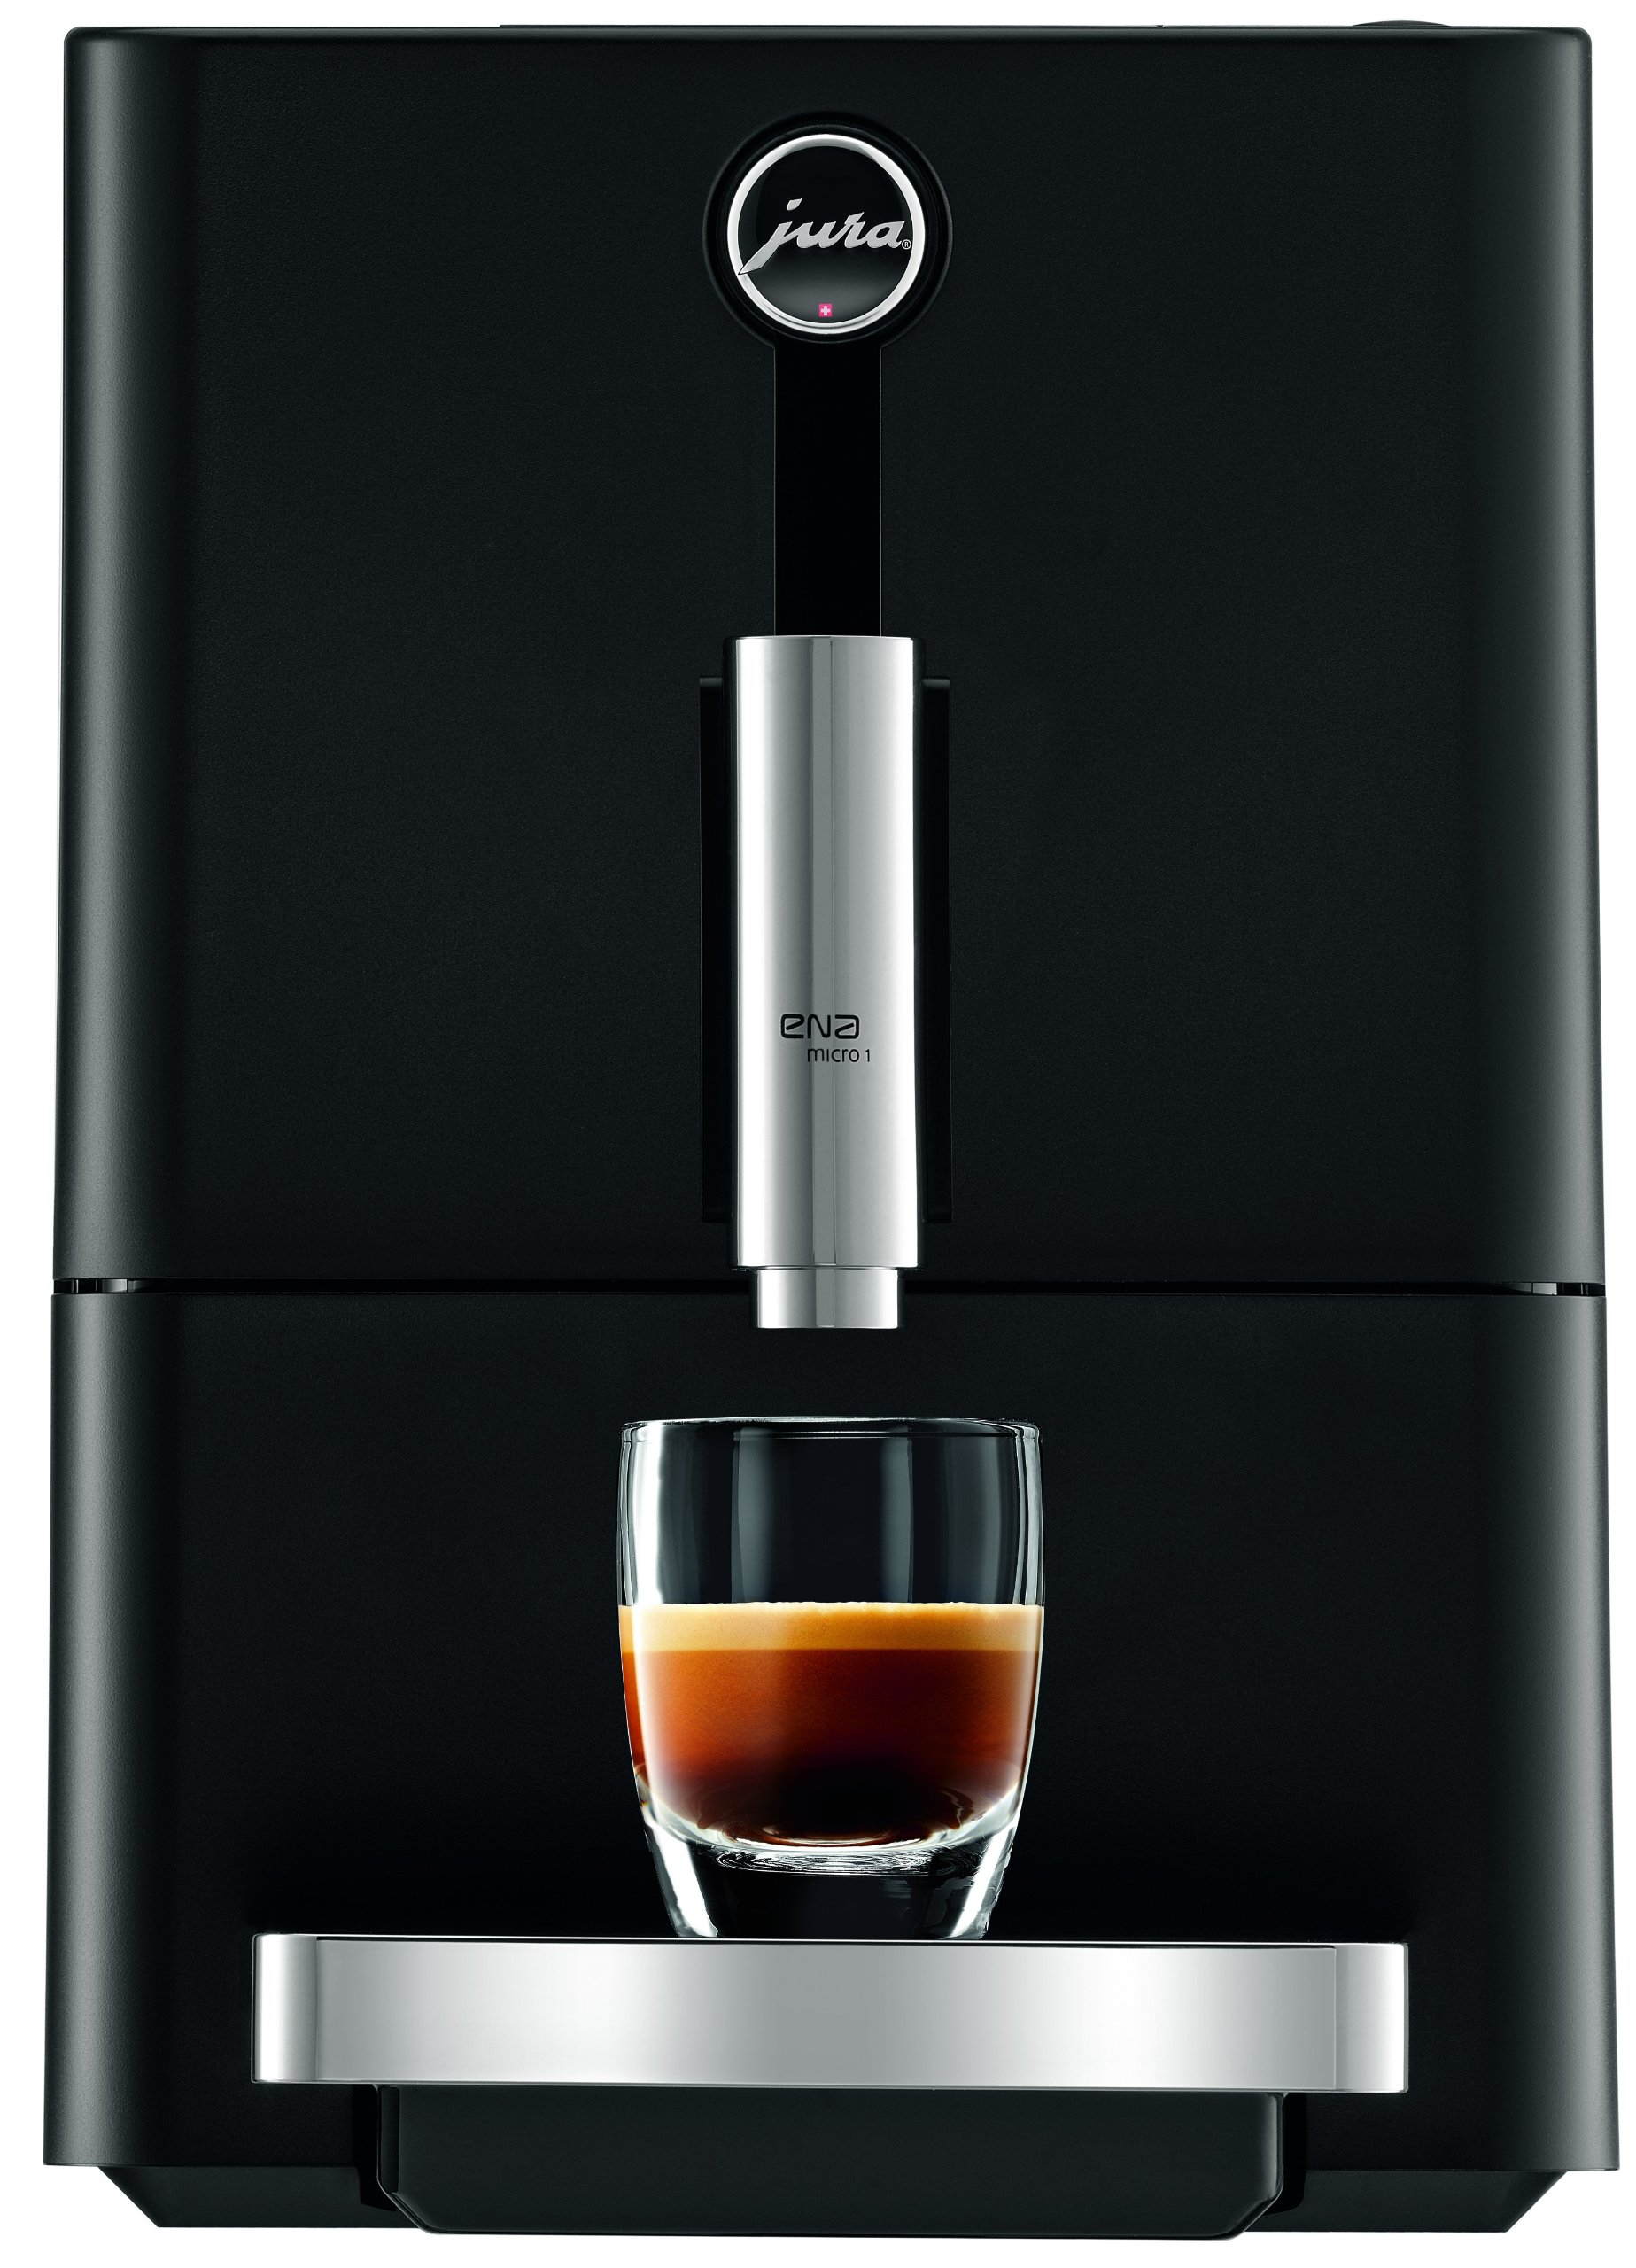 Jura 13626 Ena Micro 1 Automatic Coffee Machine, Micro Black by Jura